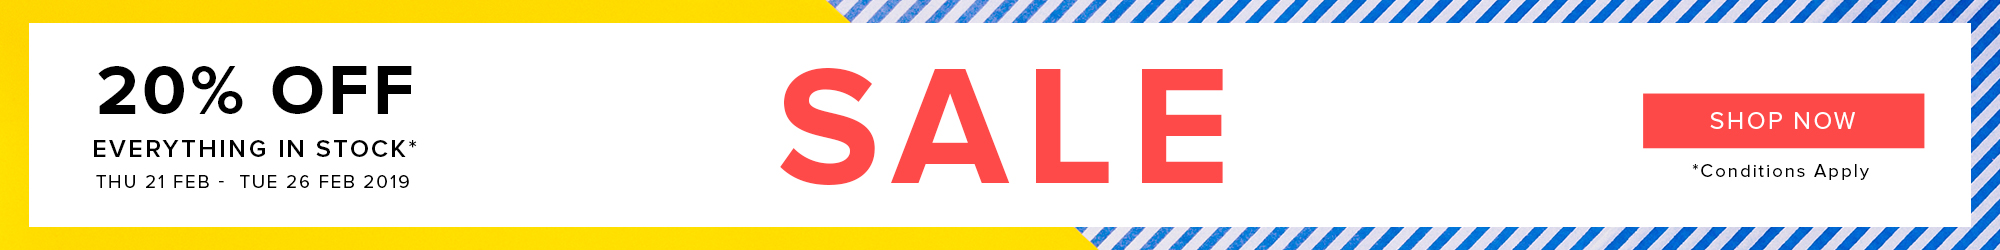 20% Off Everything in Stock*